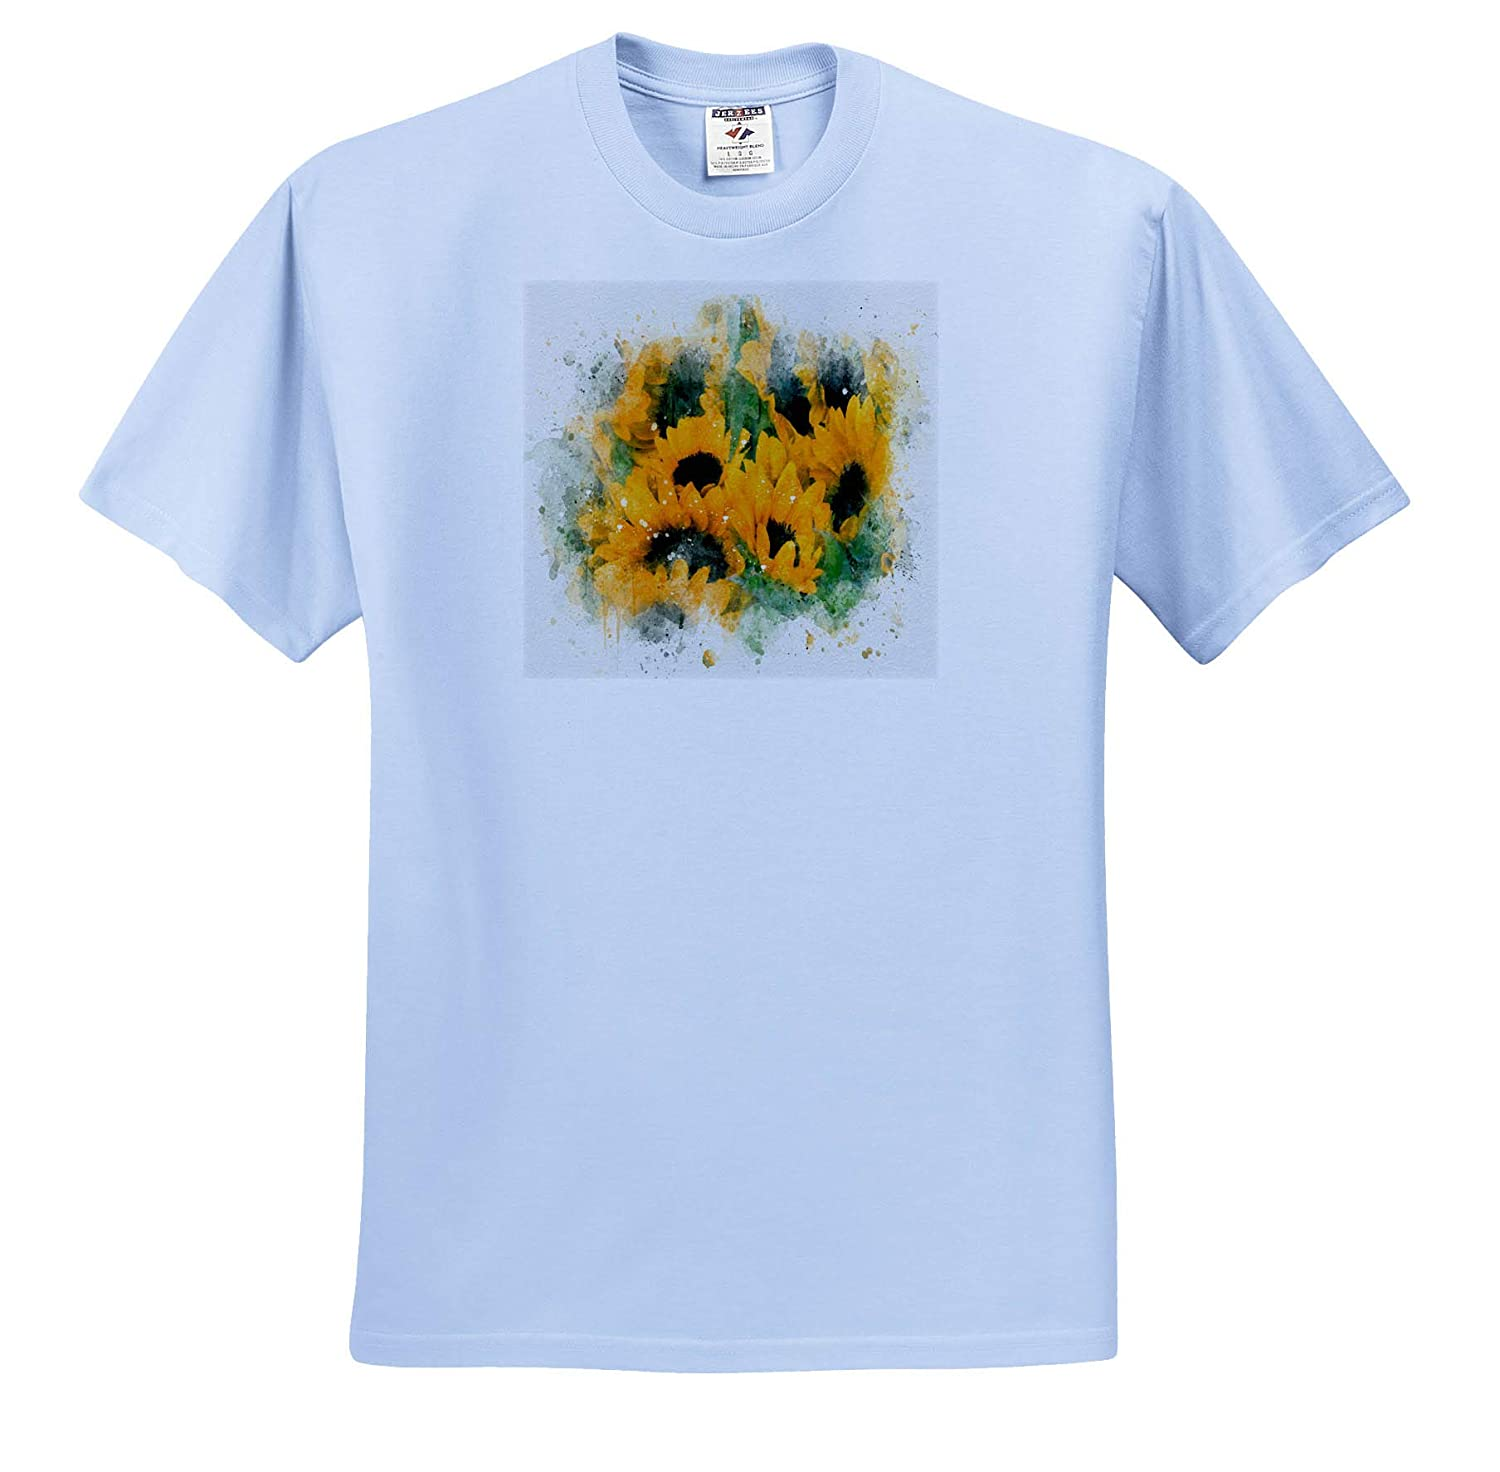 Impressionist Mixed Media Art ts/_318713 Image of Watercolor Sunflower Art 3dRose Anne Marie Baugh Adult T-Shirt XL